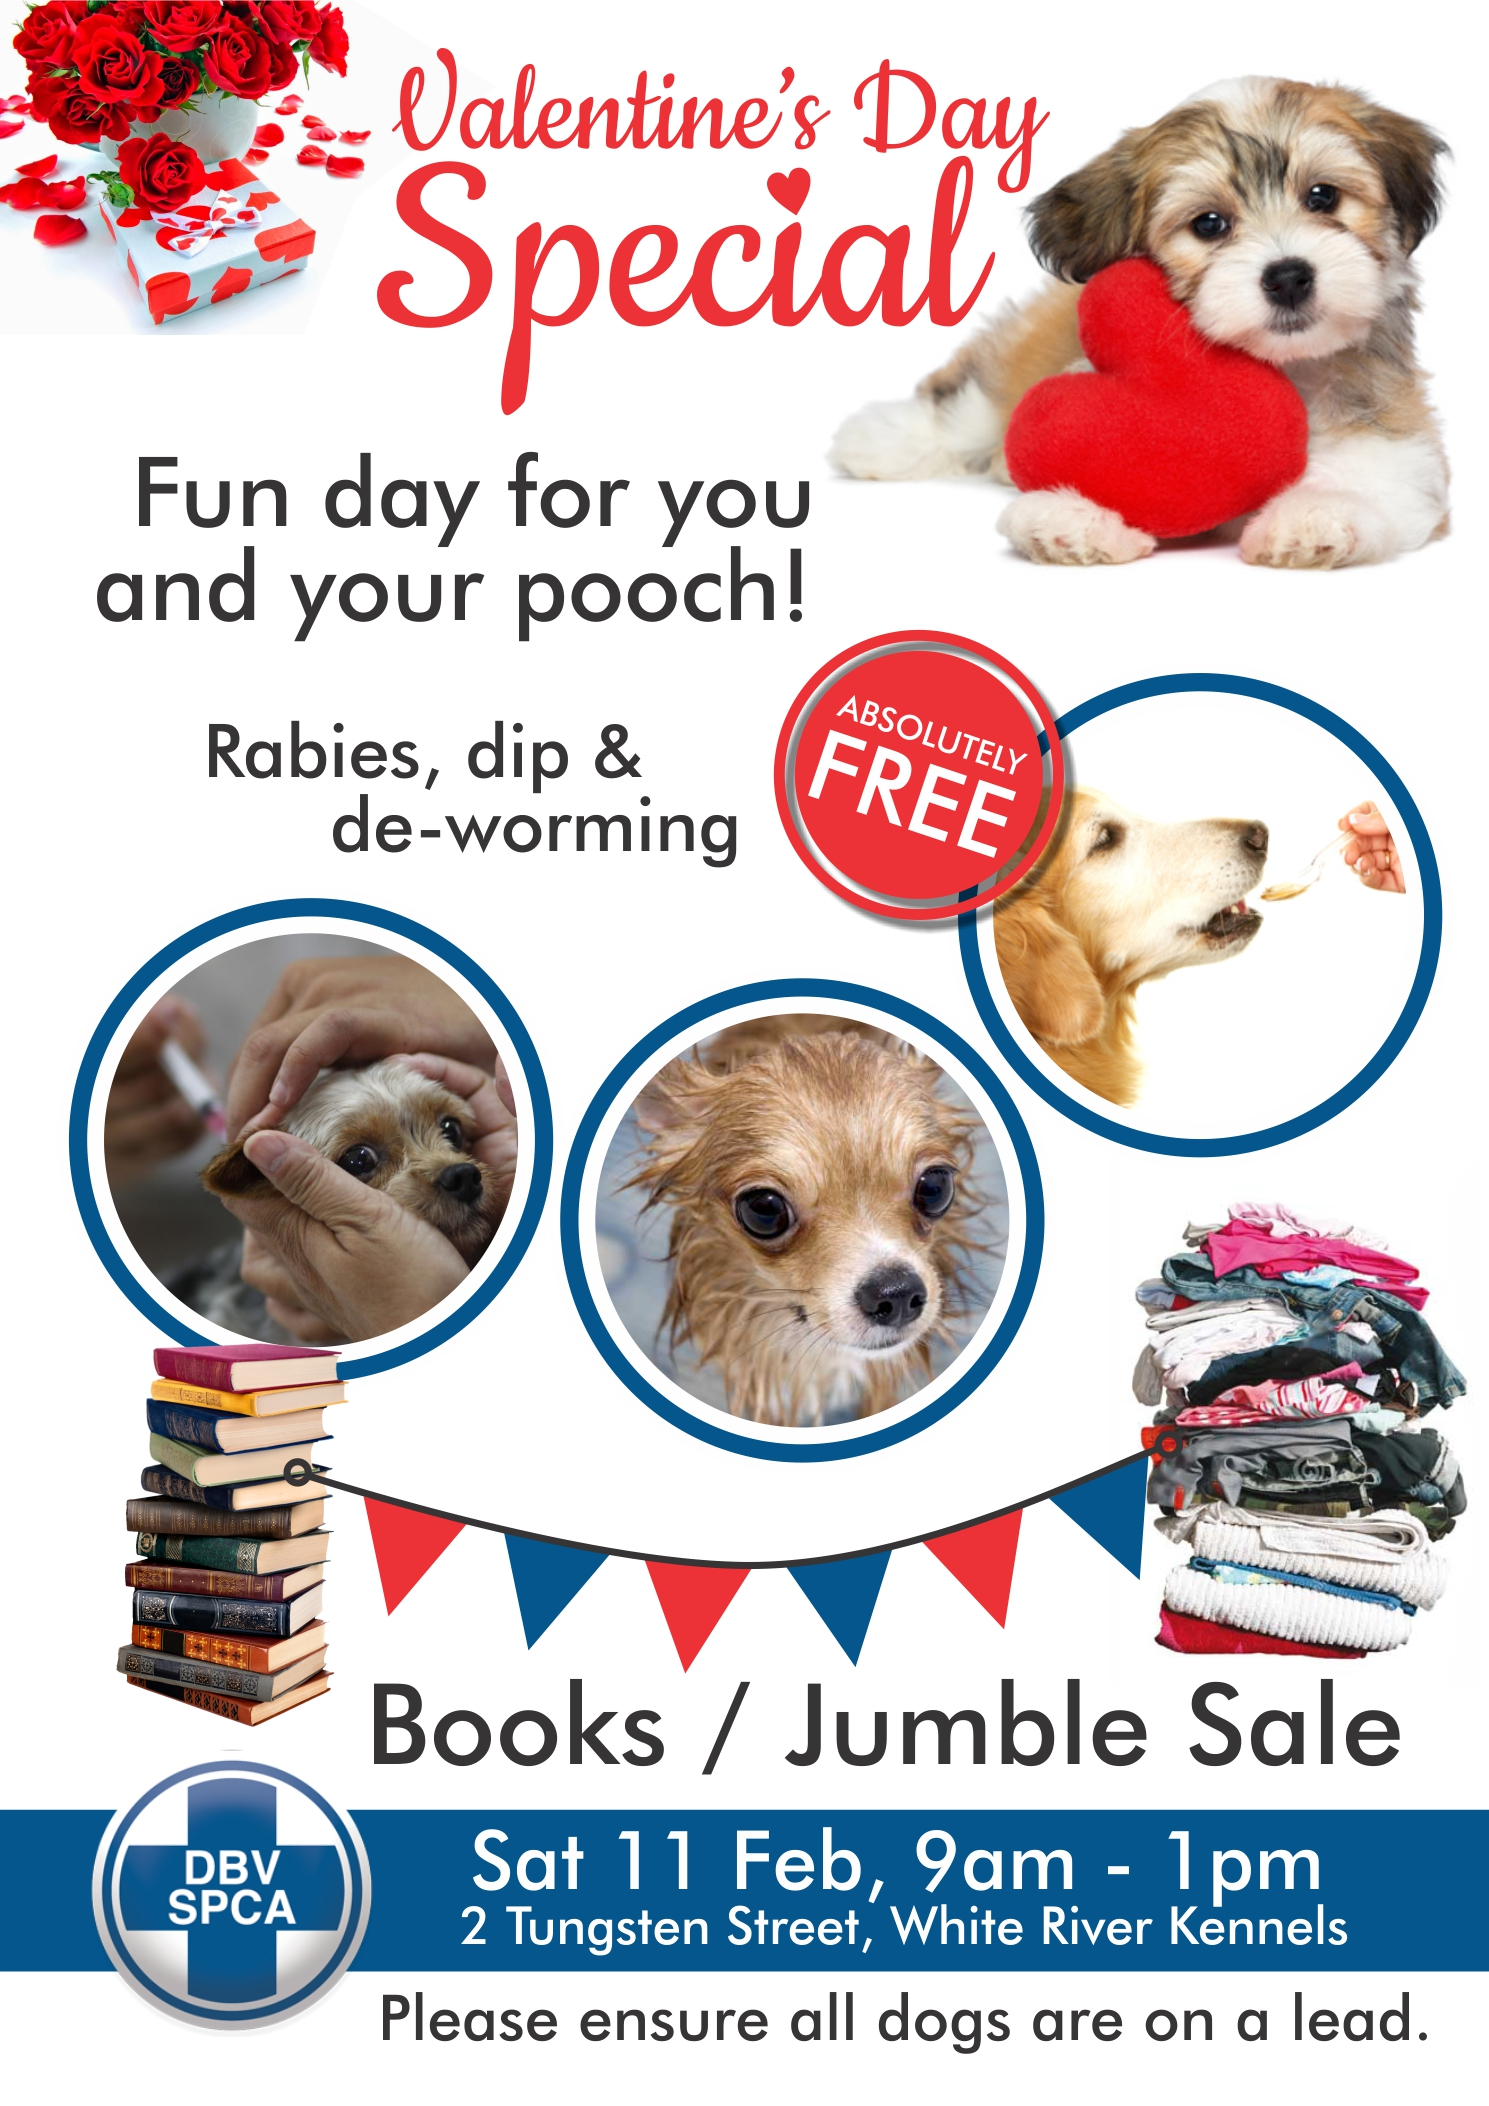 Book and Jumble Sale at SPCA - We Are White River